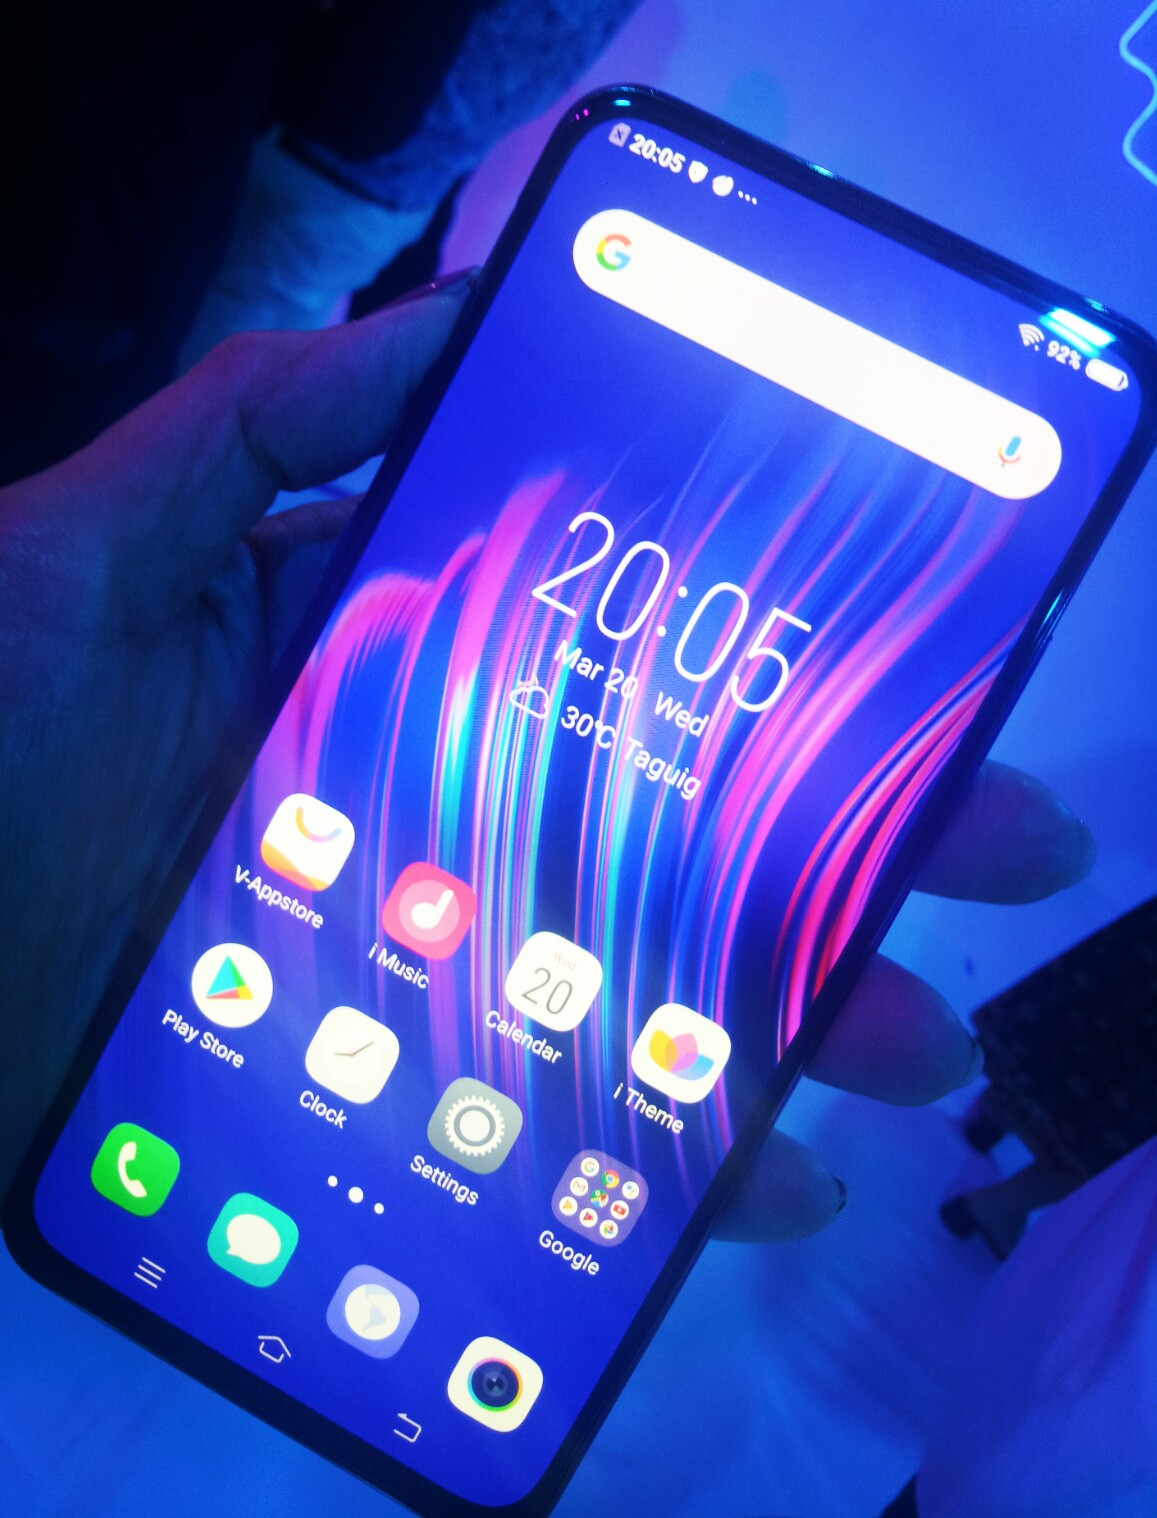 Vivo V15 Pro unveiled with premium features that level up user